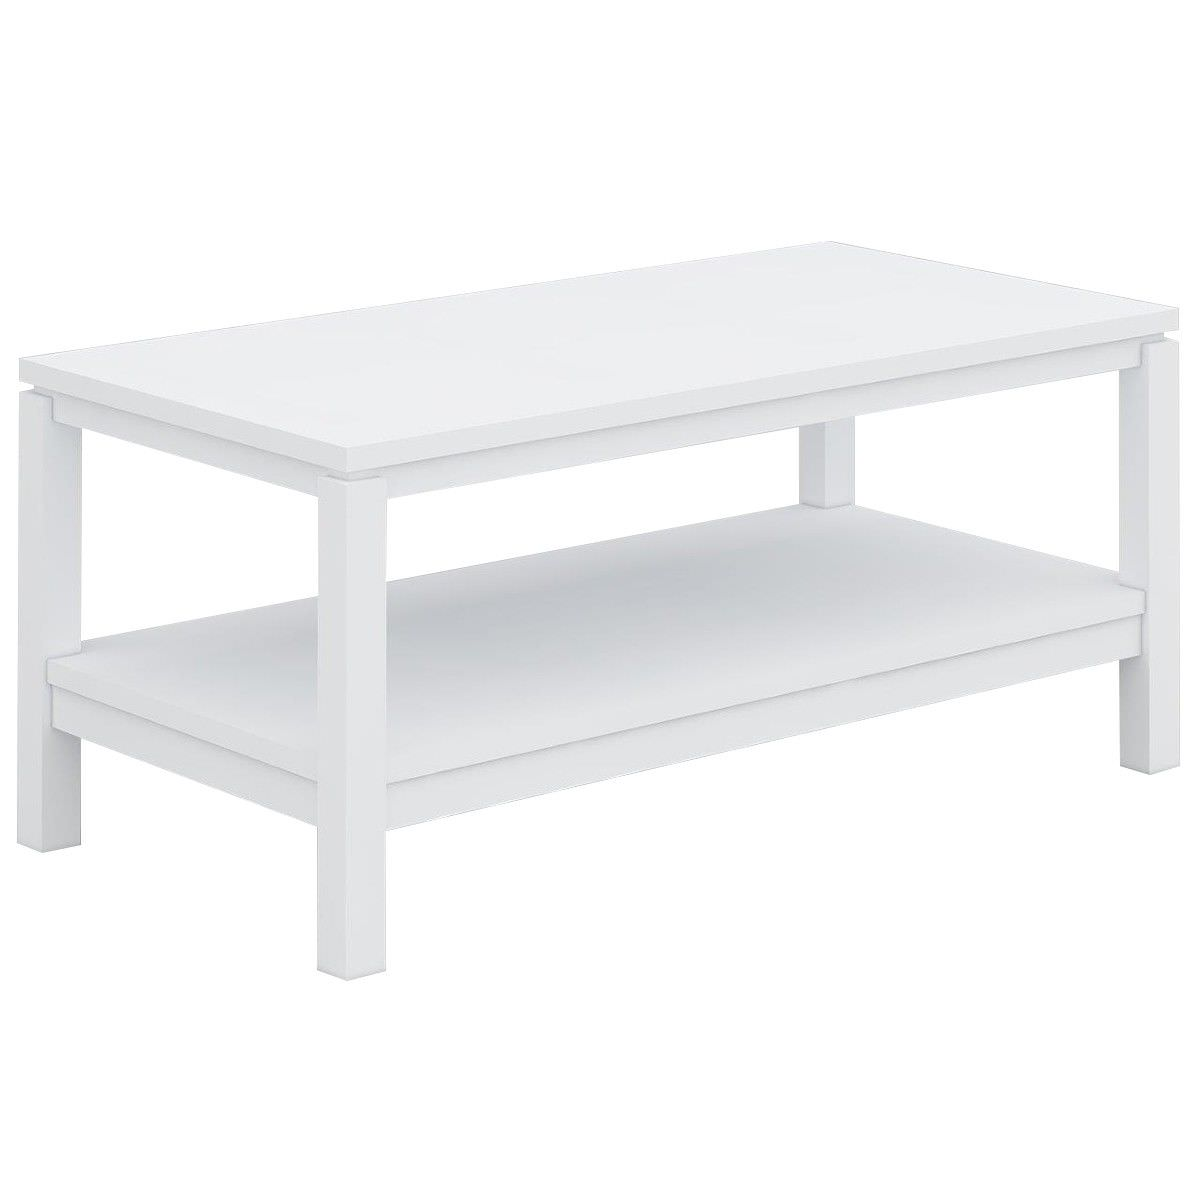 White And Timber Coffee Table Braque Solid Rubberwood Timber Coffee Table 96cm White